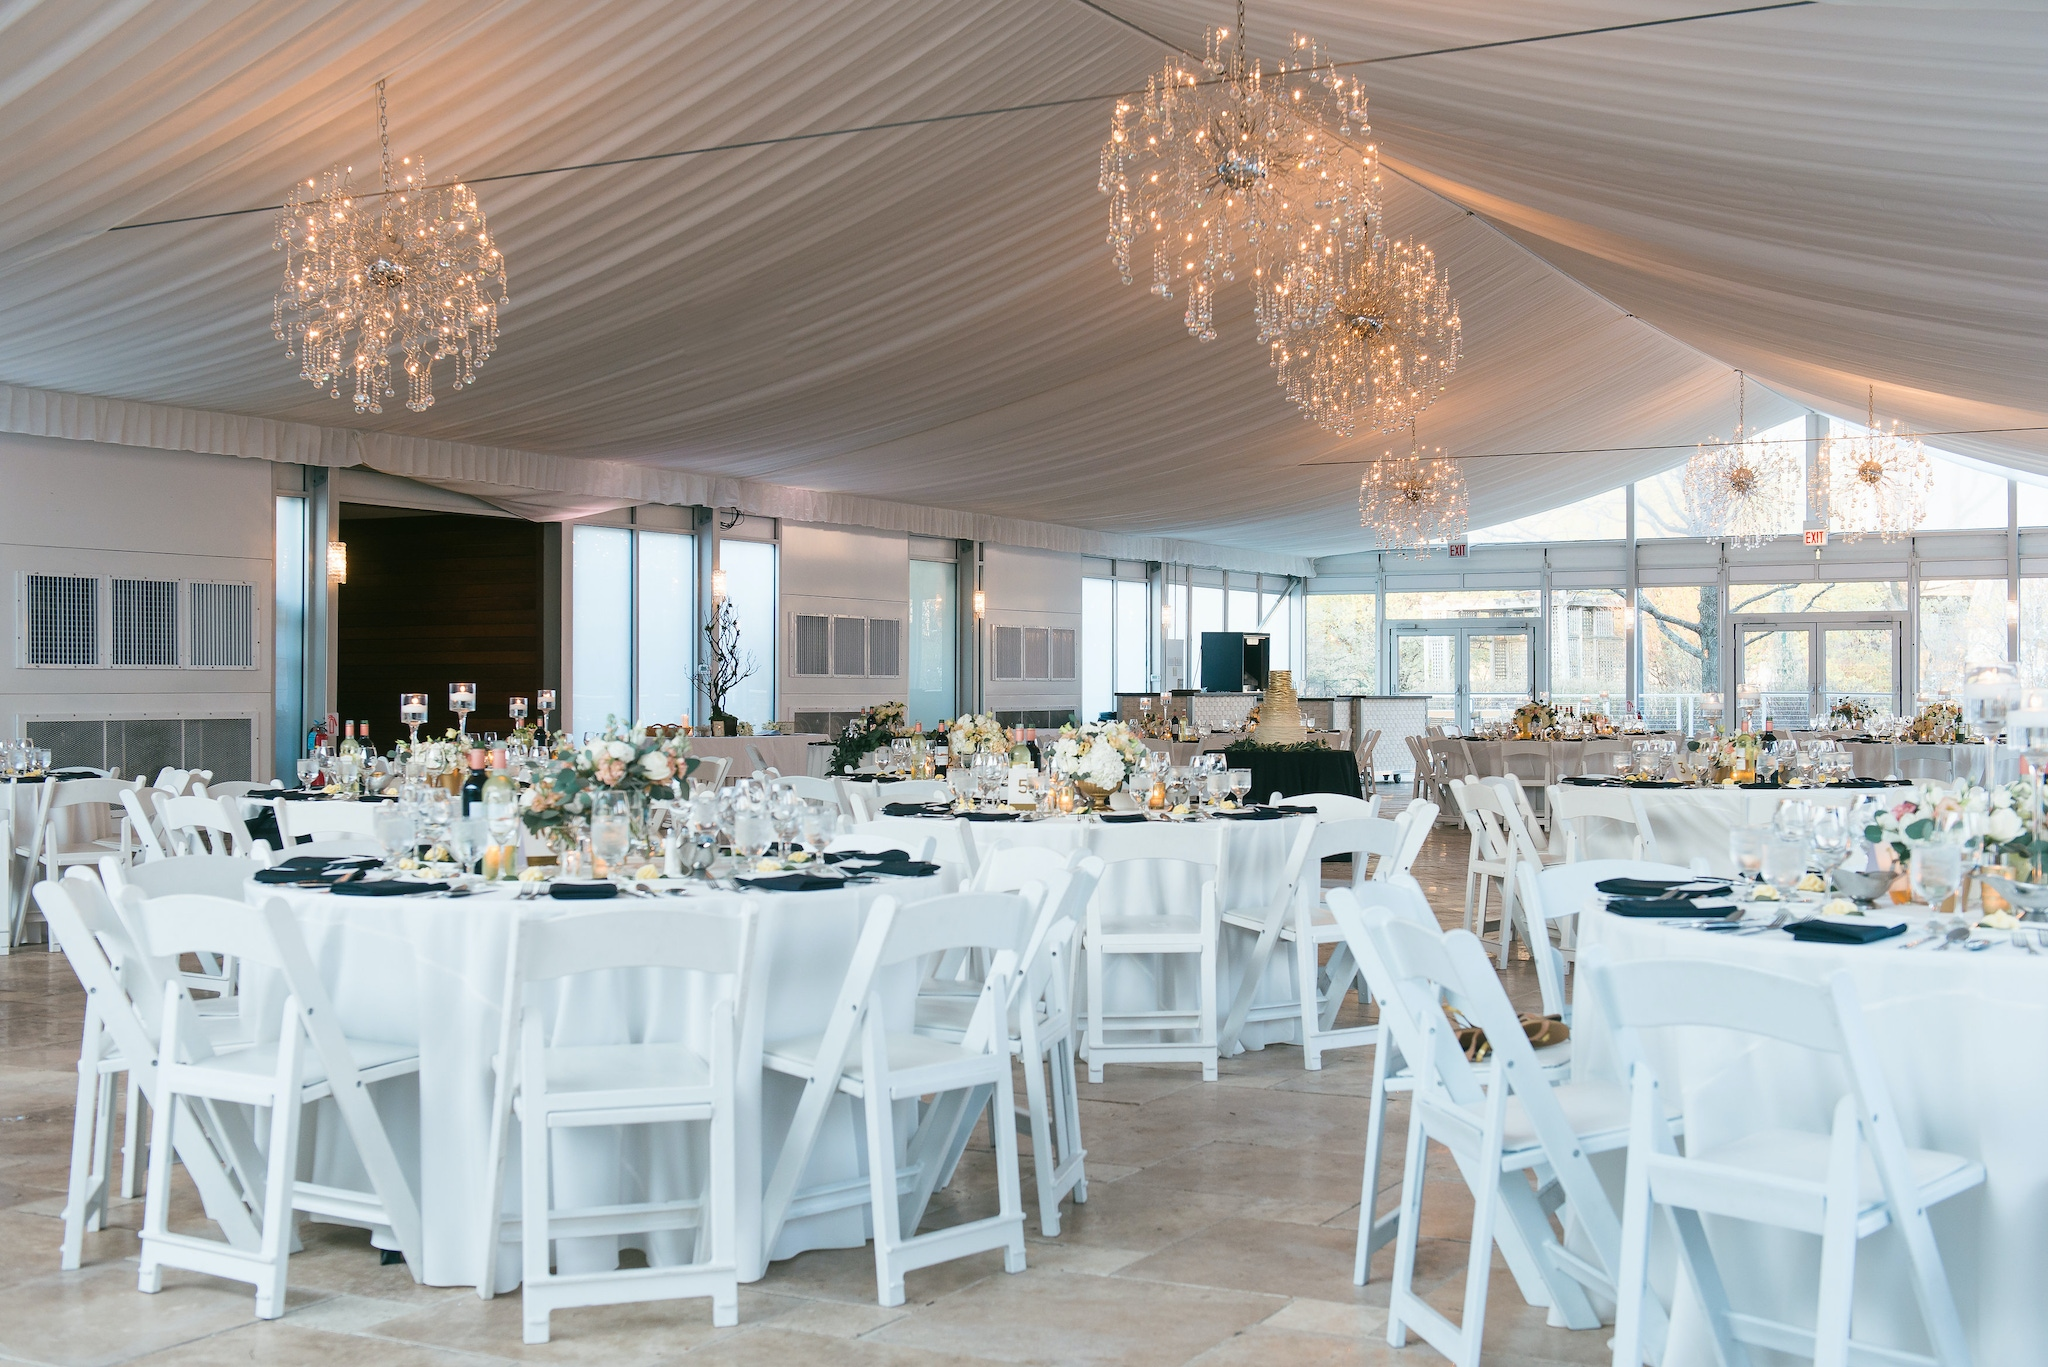 white tented pavilion space